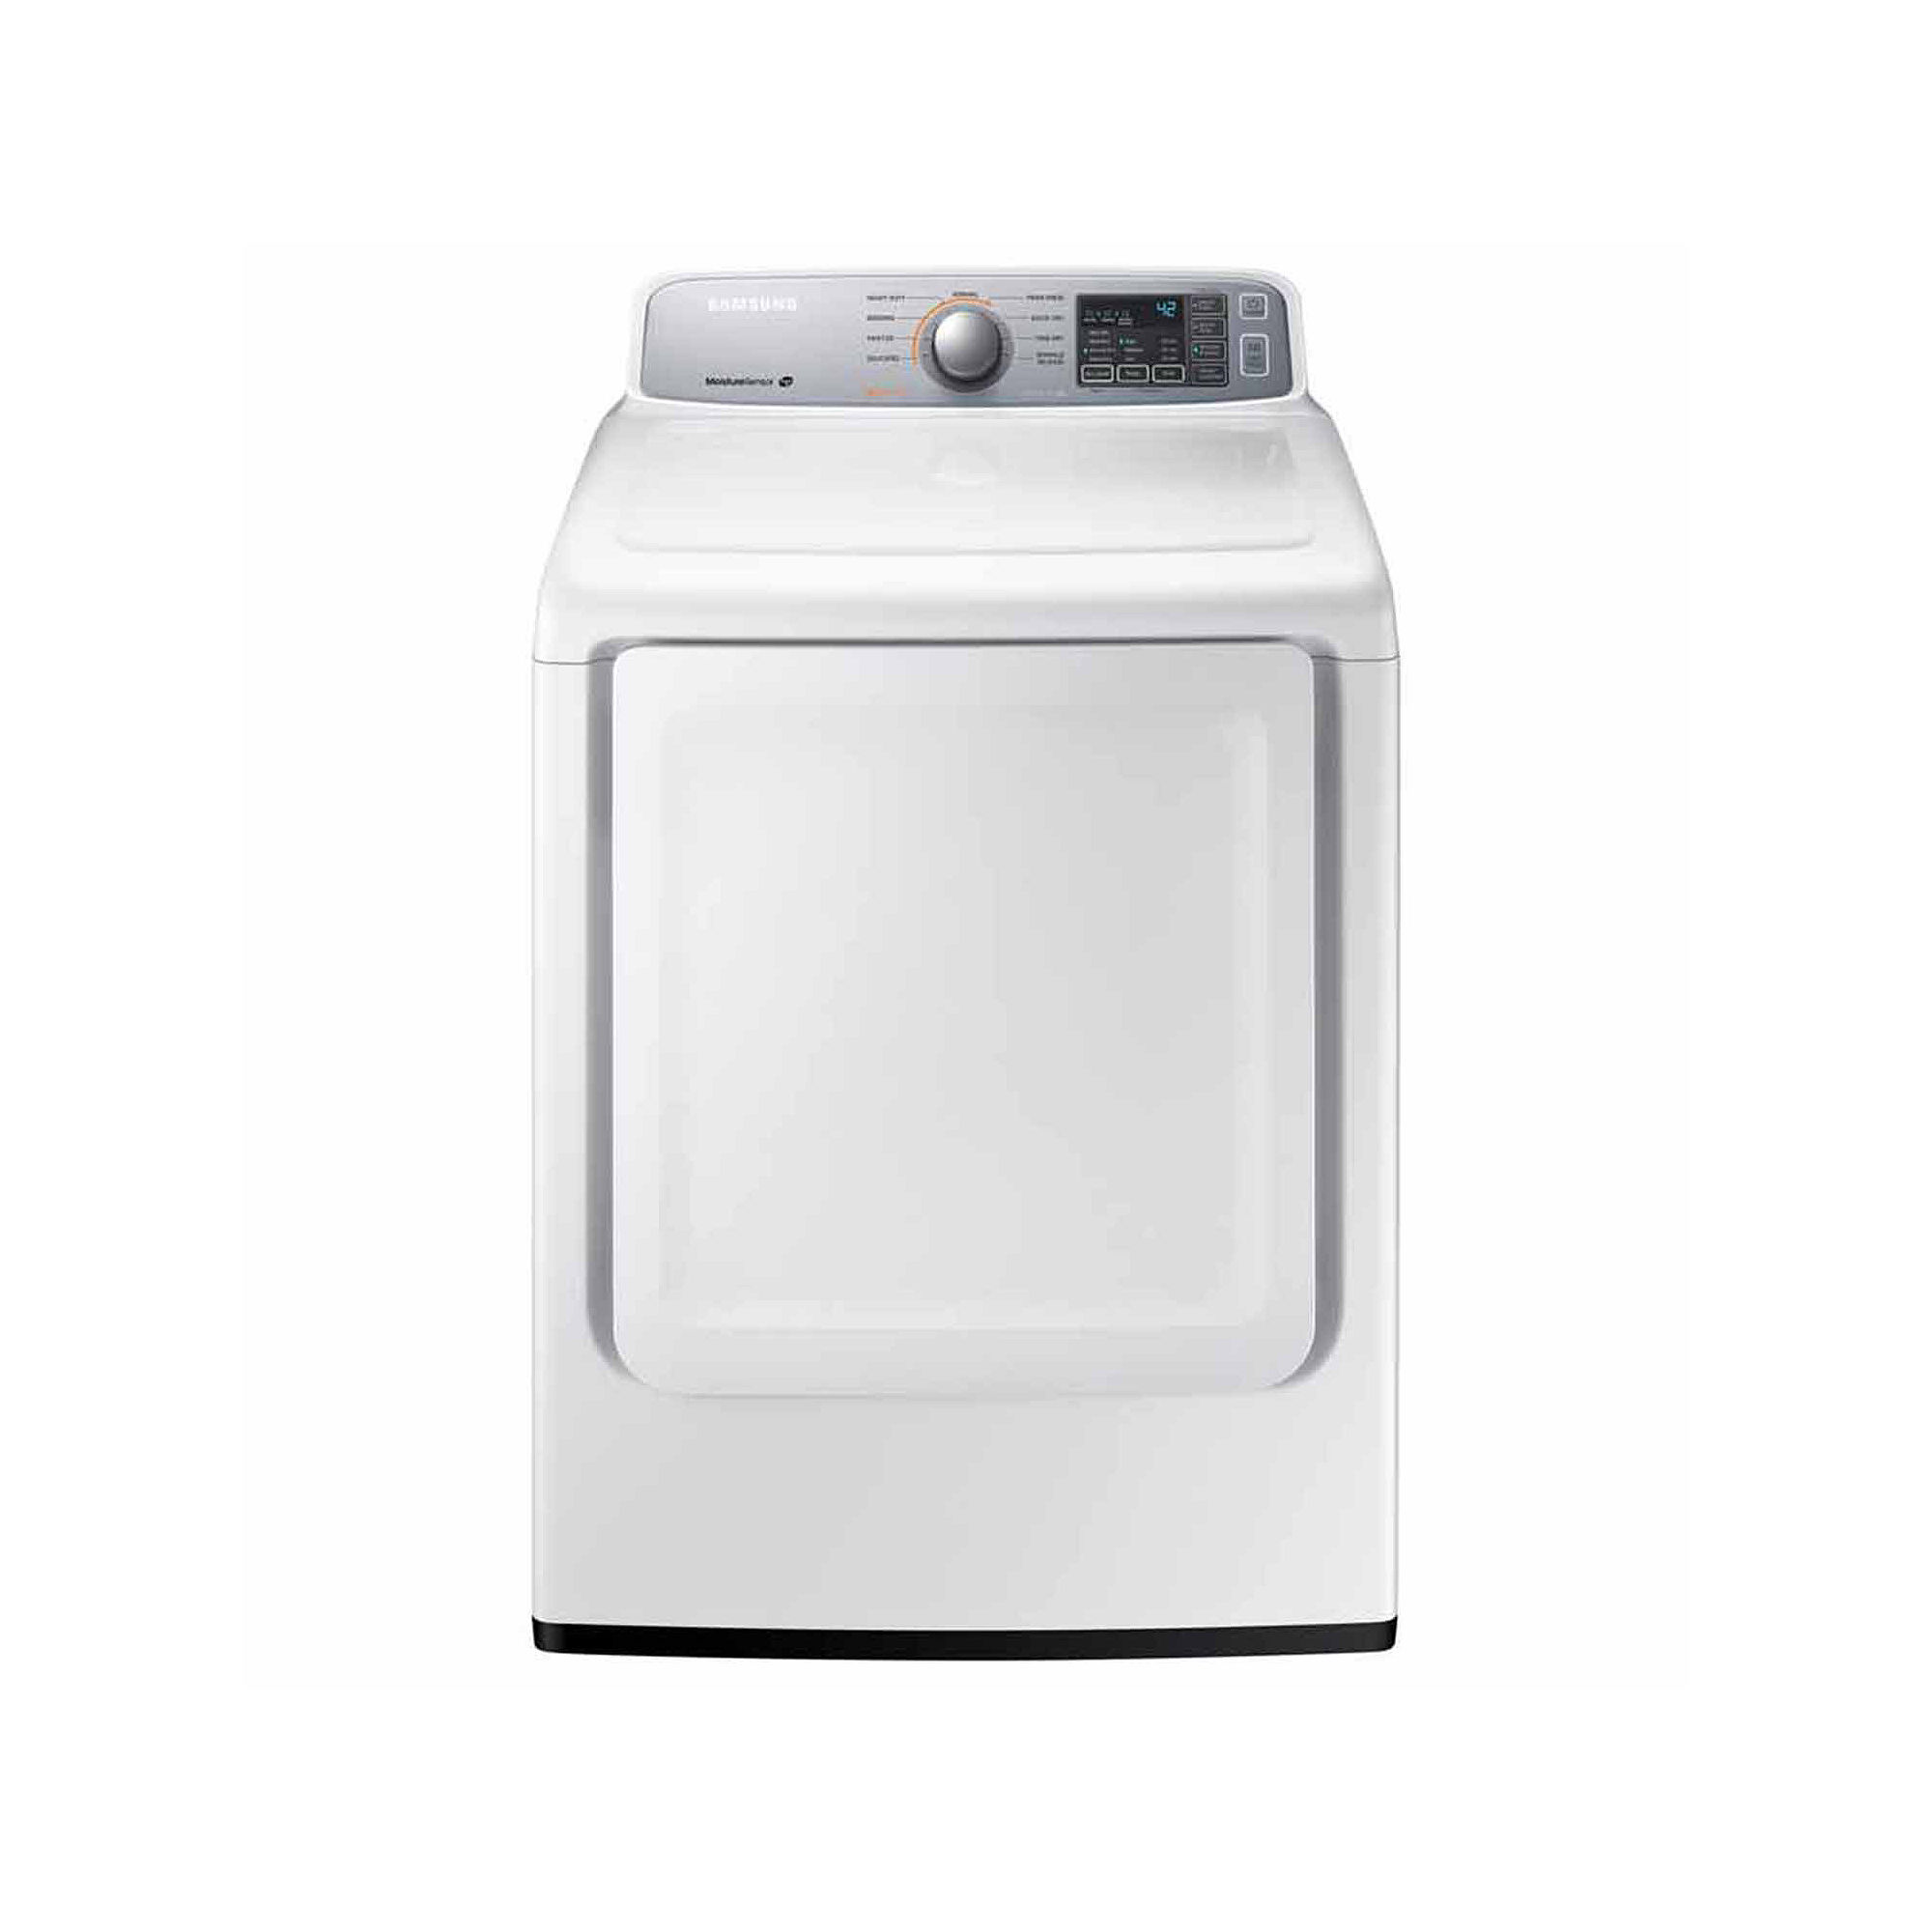 Samsung 7.4 cu. ft. Gas Dryer with Sensor Dry - DV45H7000GW/A2